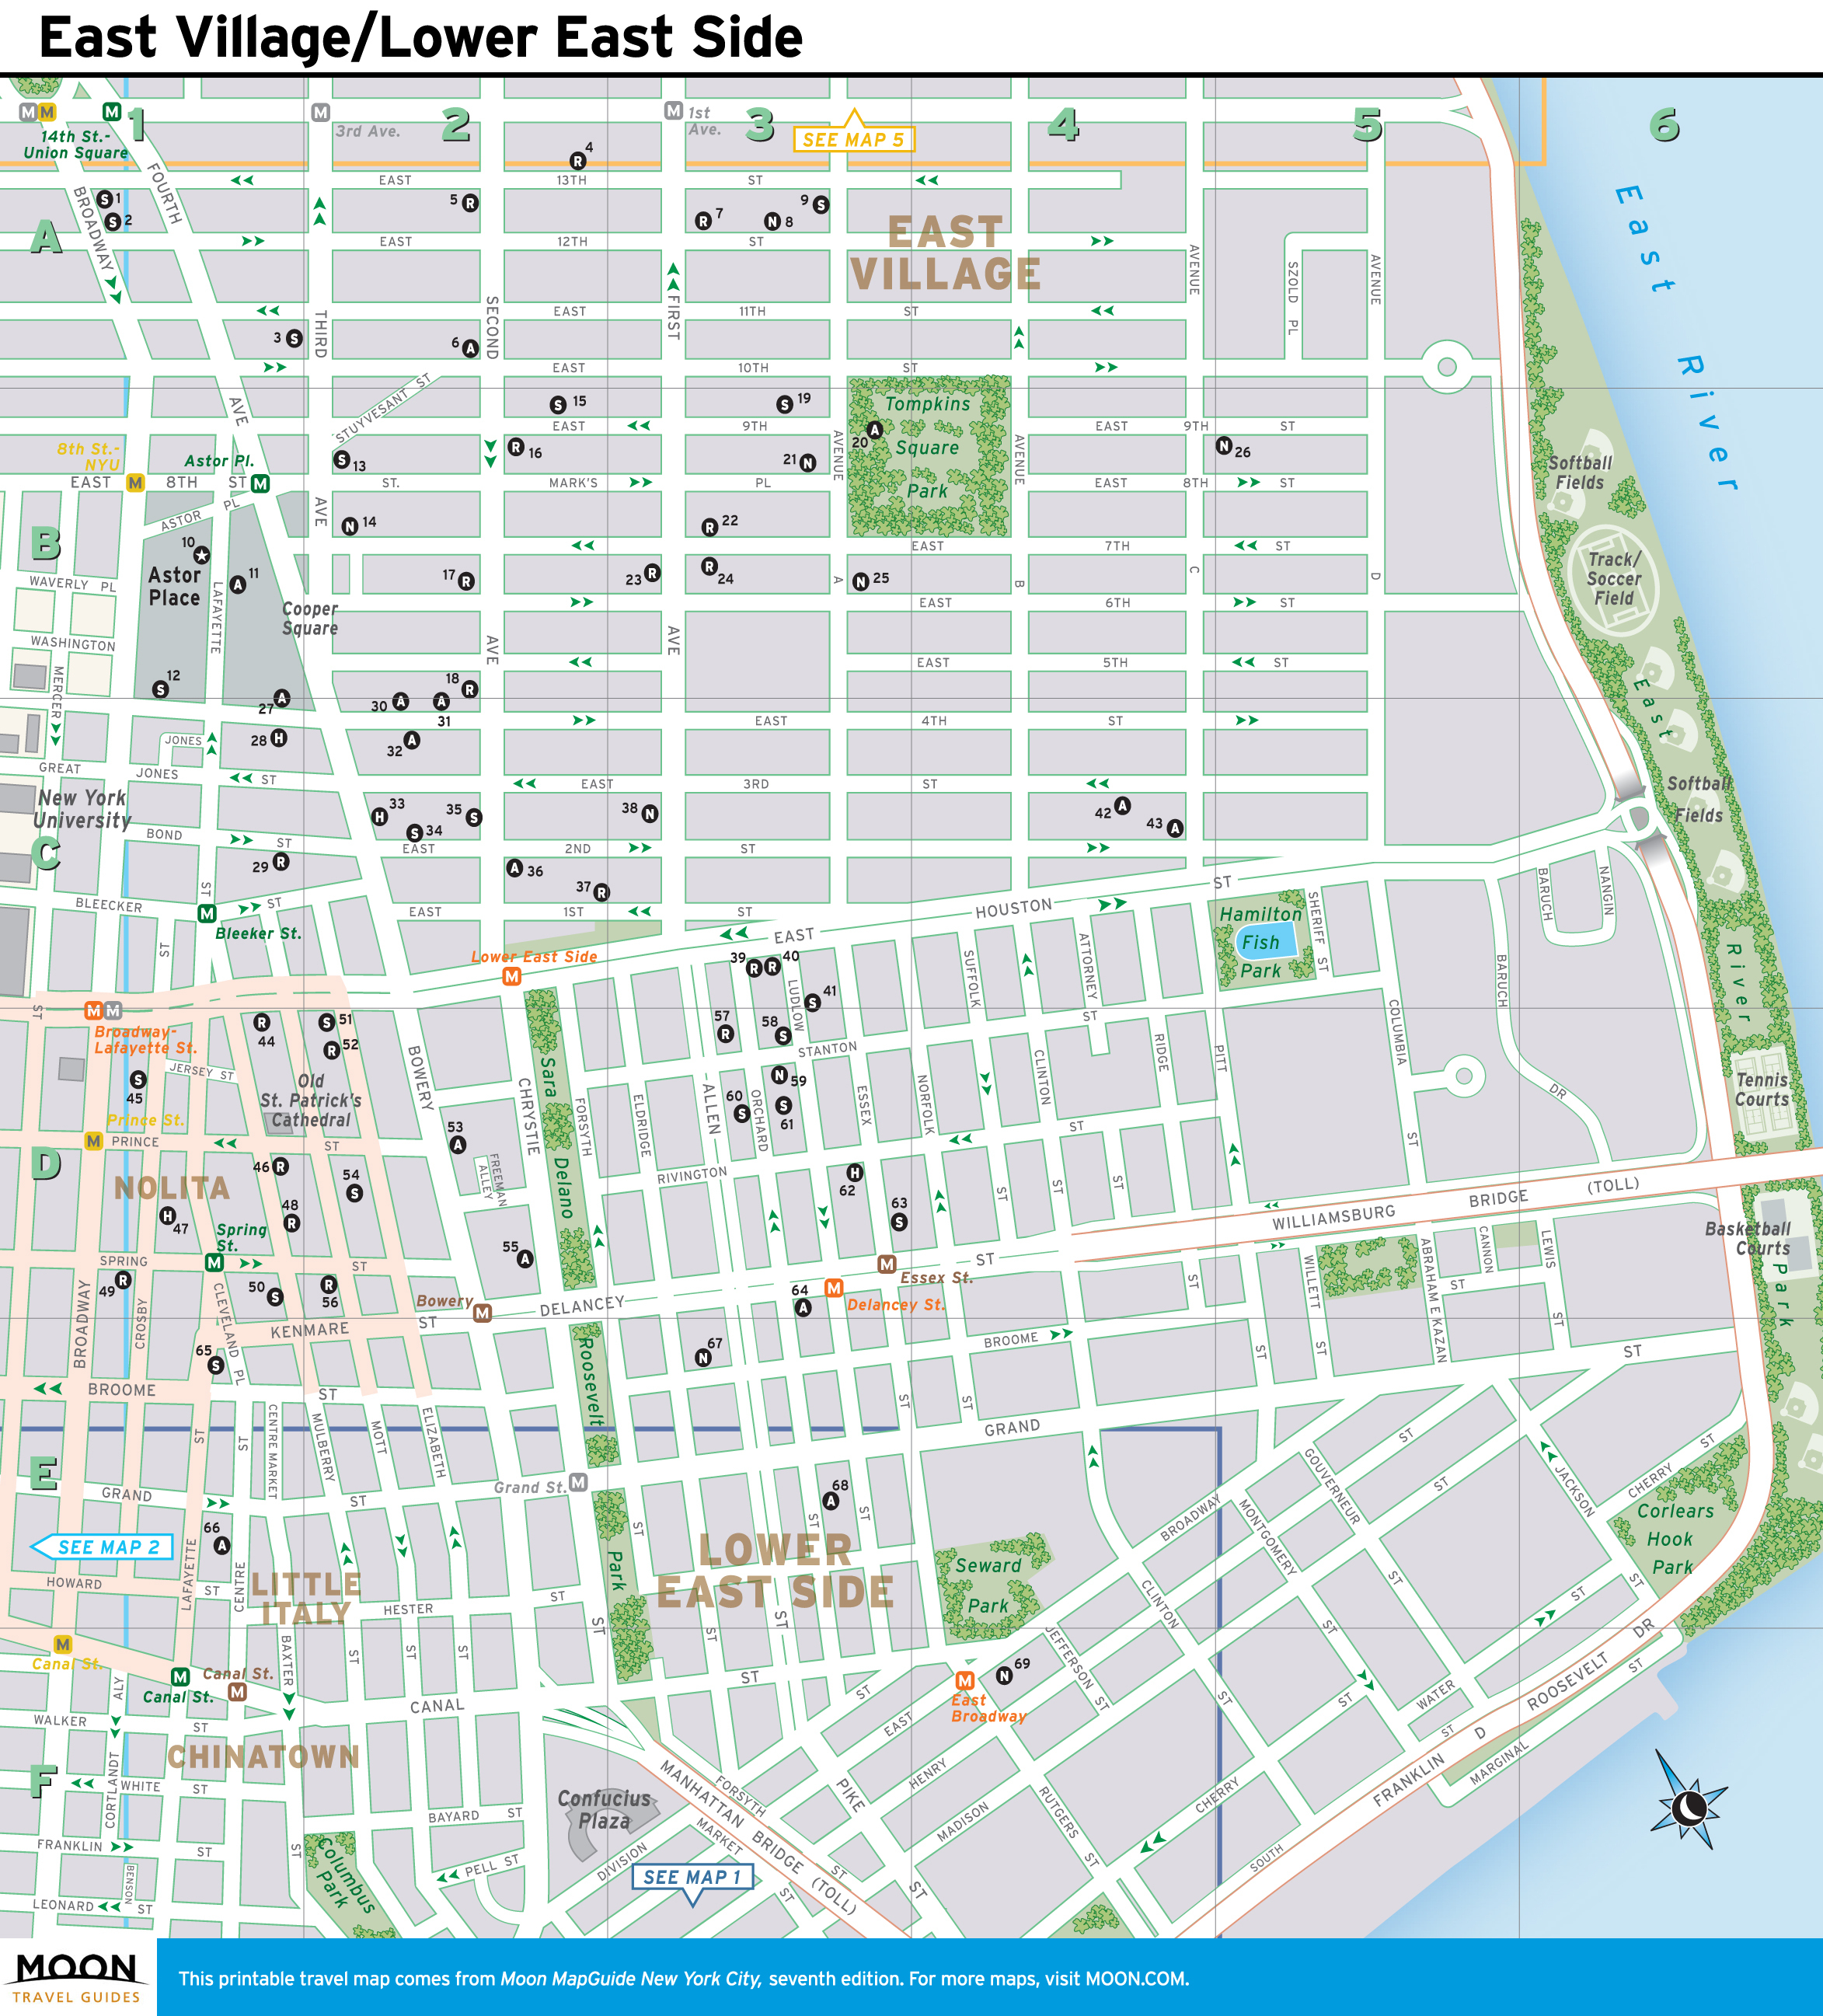 Printable Street Map Of New York City | Travel Maps And Major - Street Map Of New York City Printable